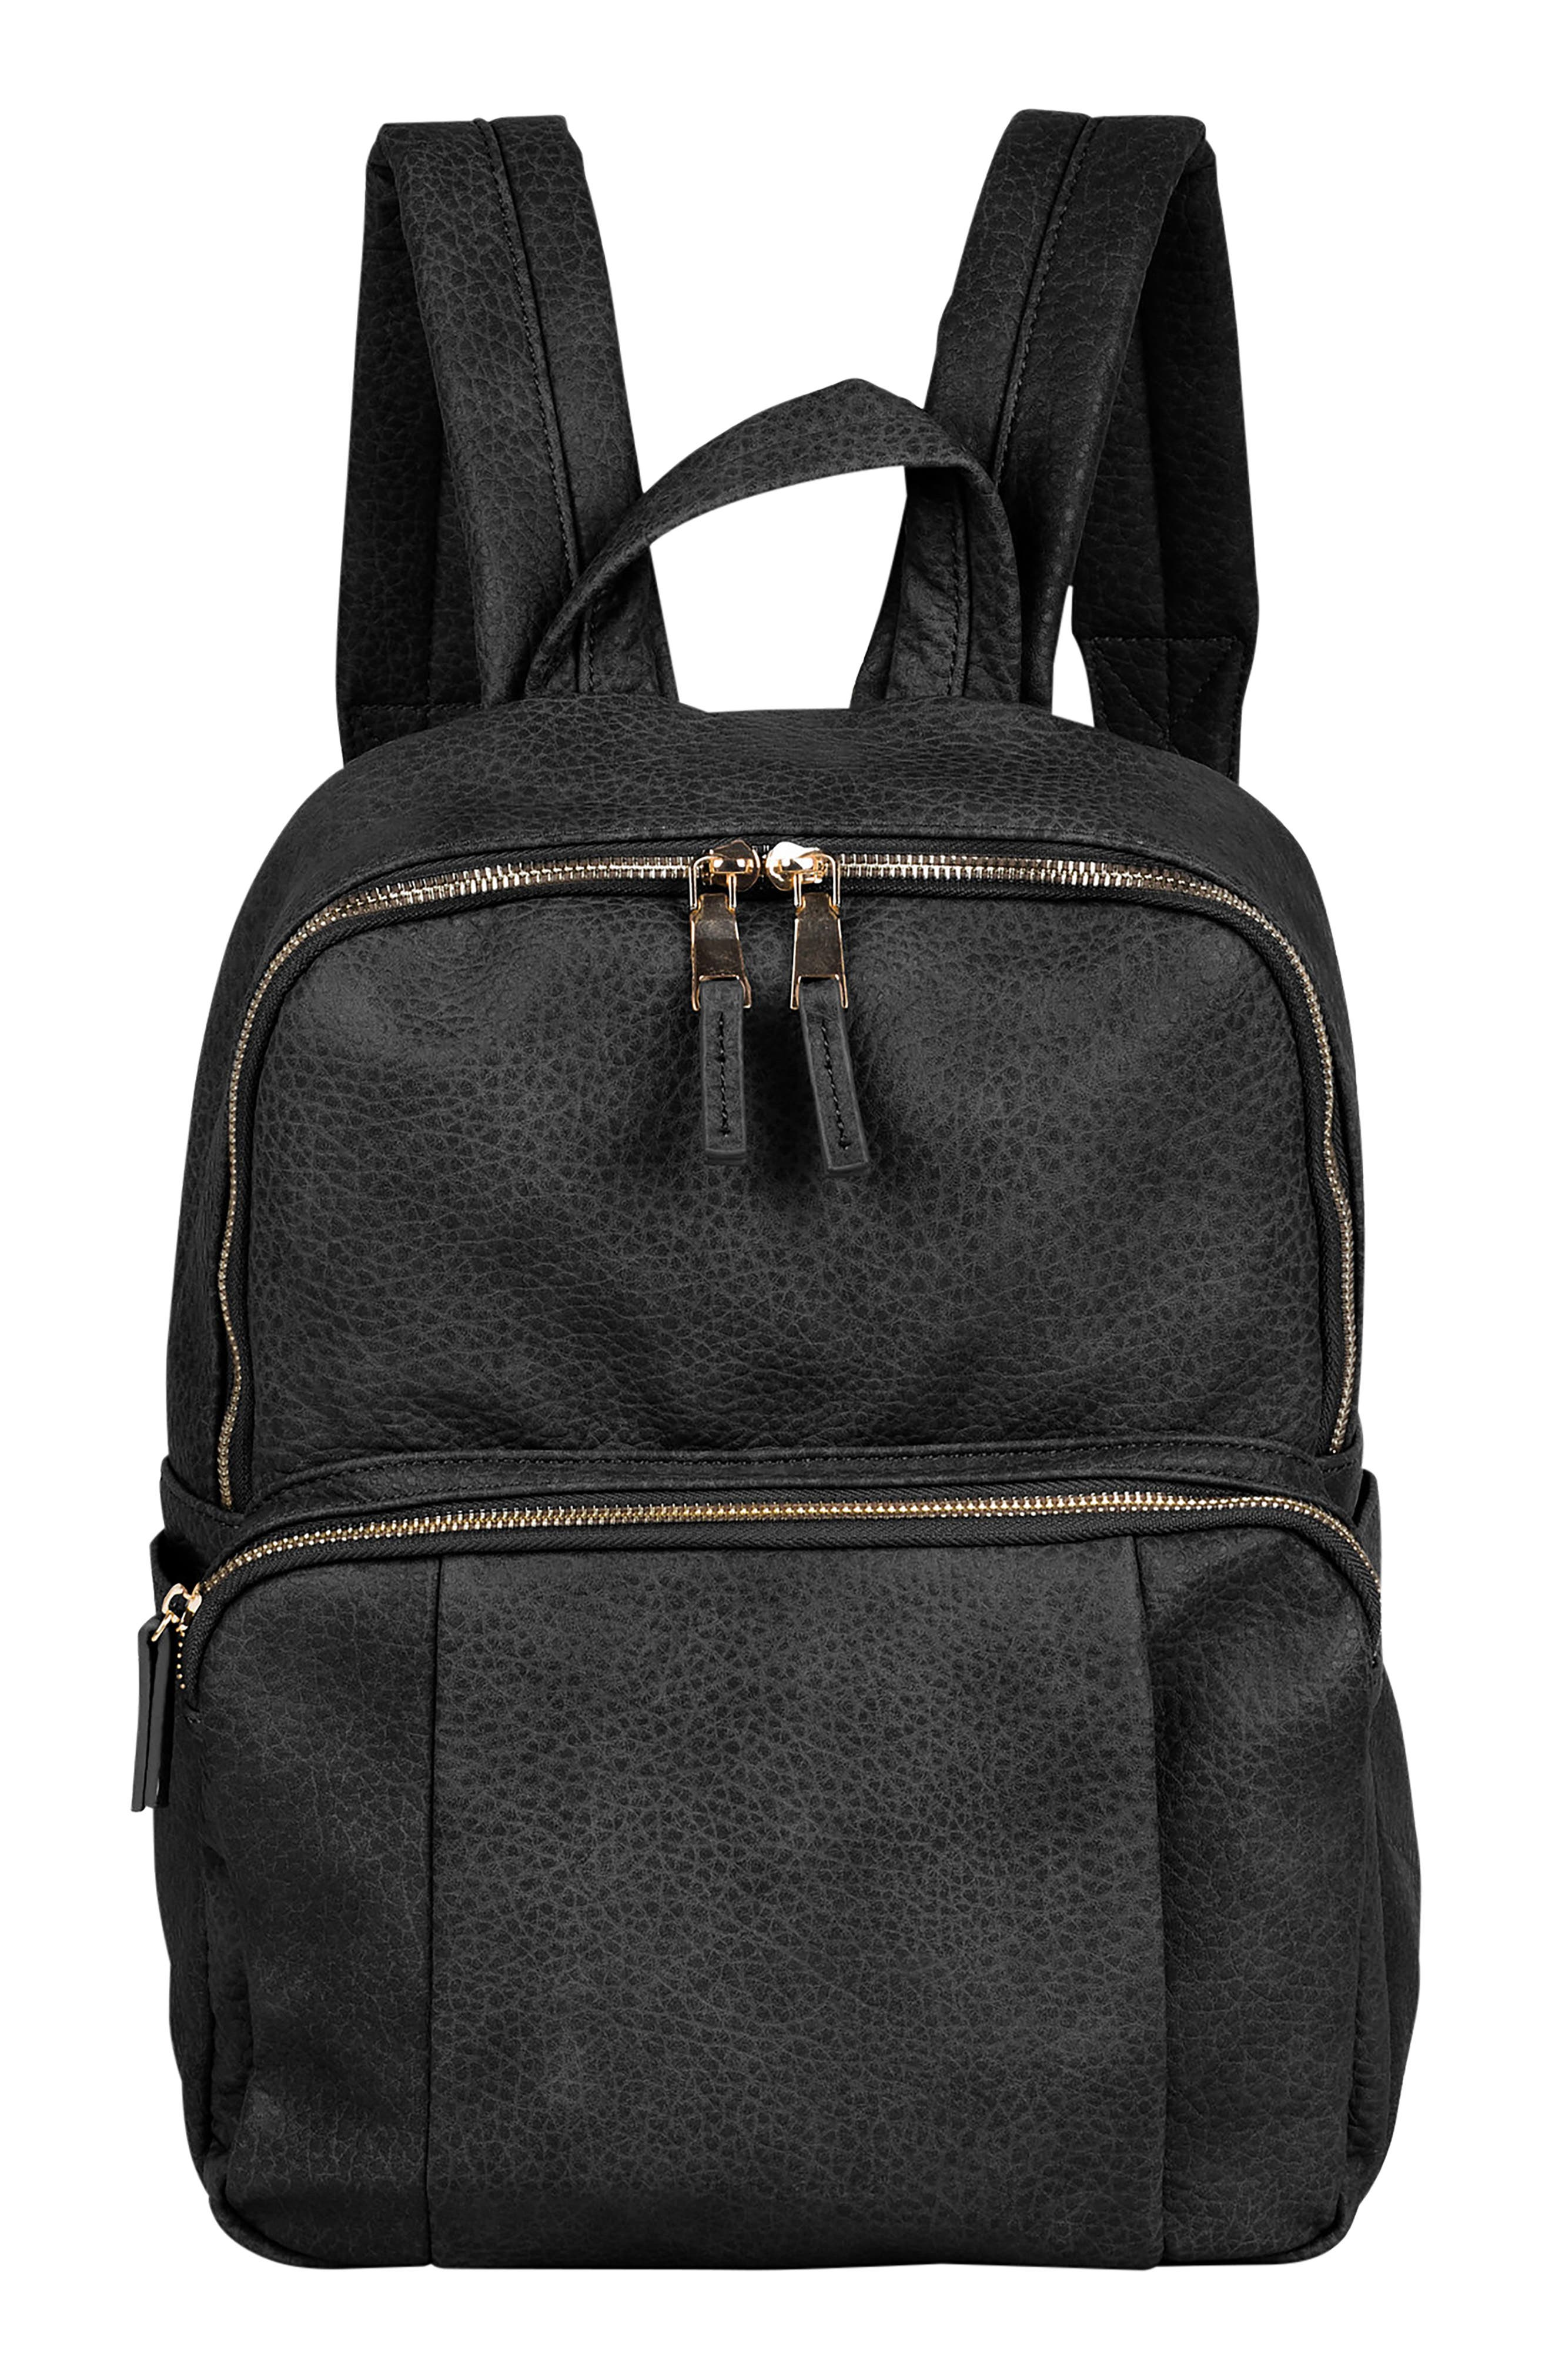 URBAN ORIGINALS,                             Bold Move Vegan Leather Laptop Backpack,                             Main thumbnail 1, color,                             BLACK